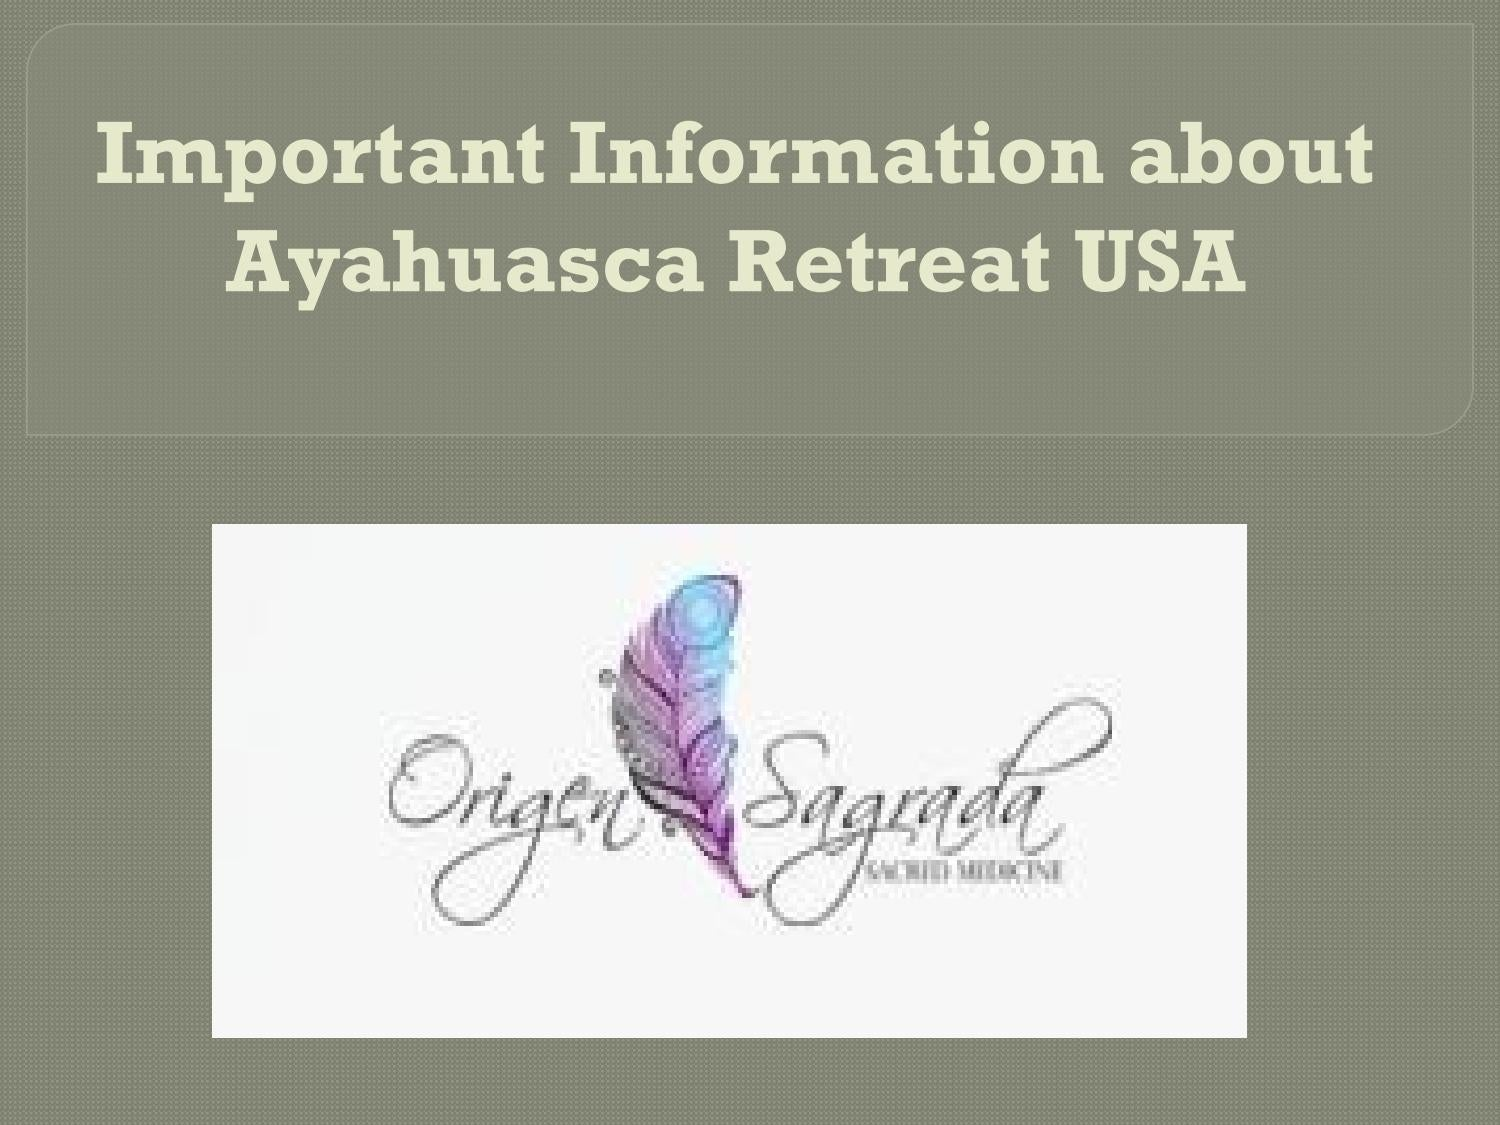 Important Information about Ayahuasca Retreat USA by Origen Sagrada